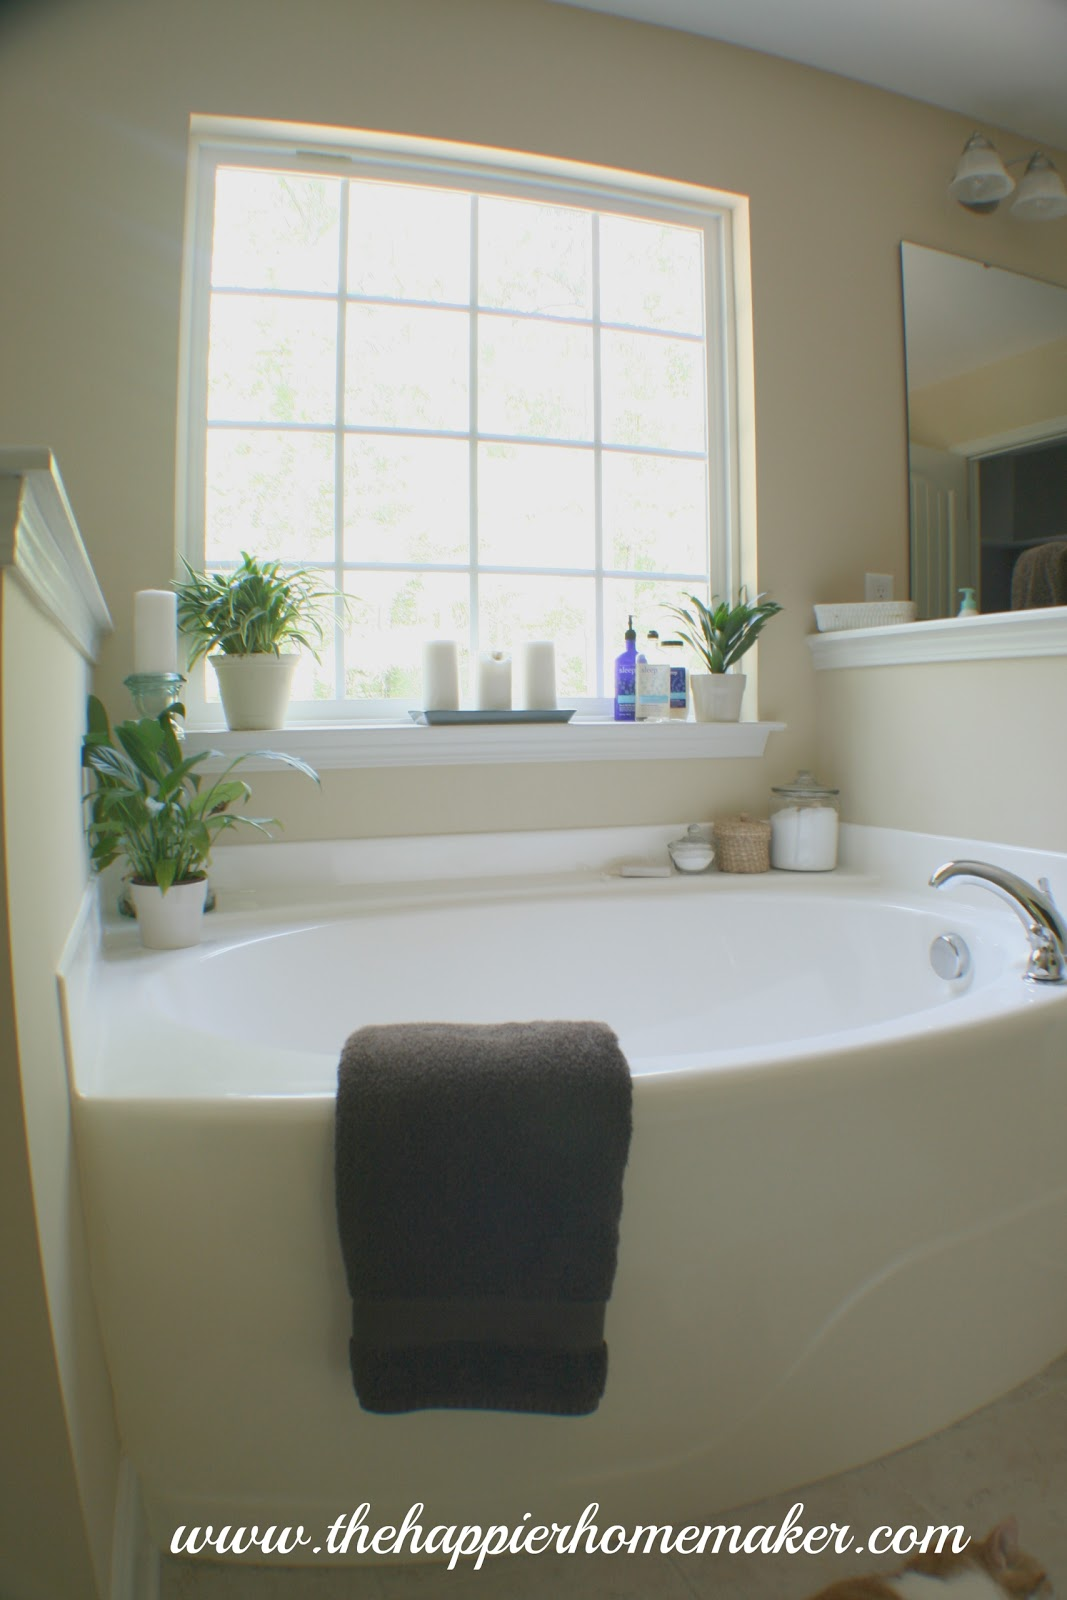 Bathroom Tub Decorating Ideas | Home design ideas